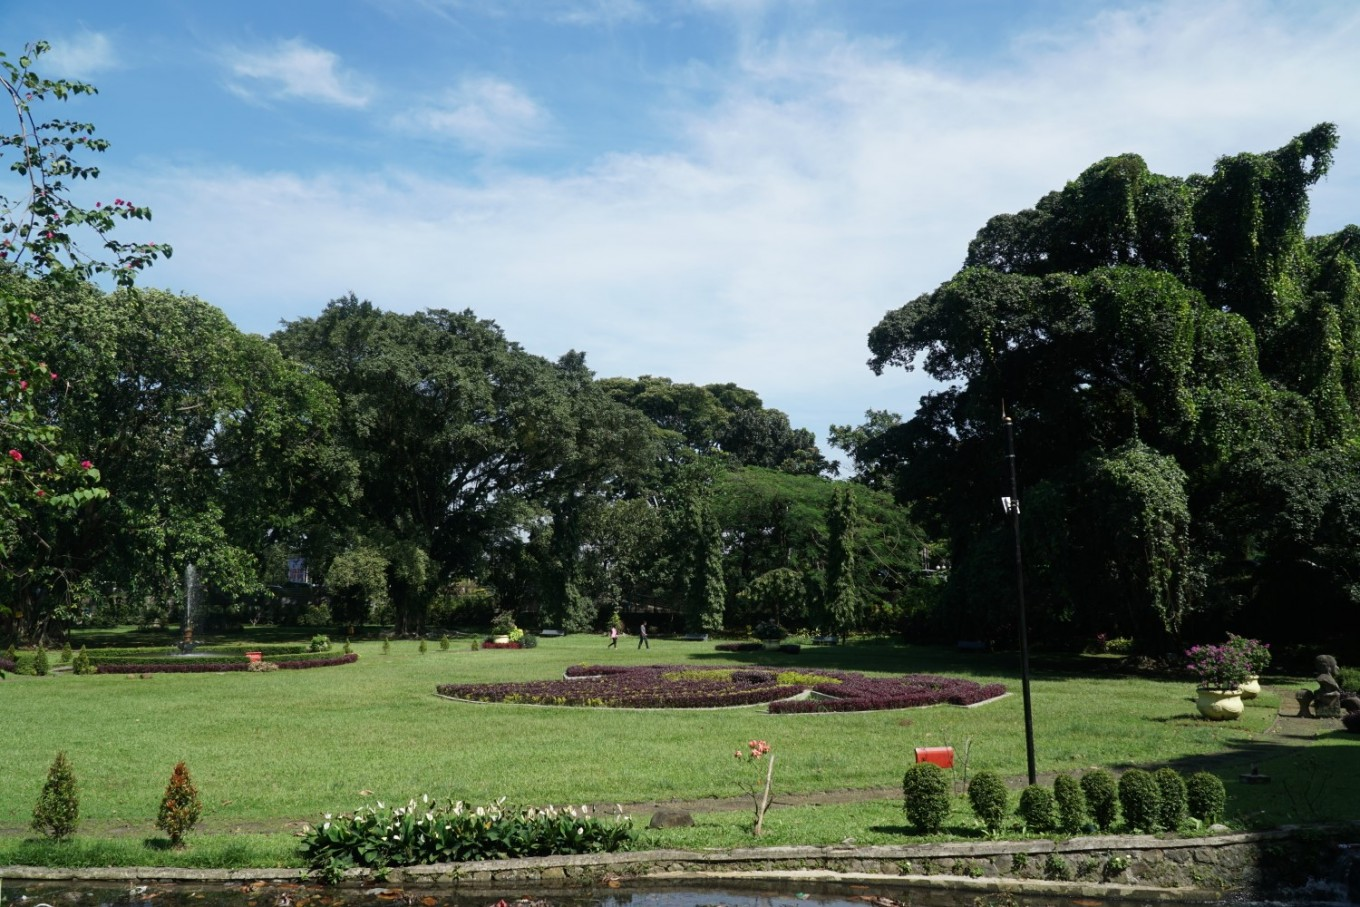 Bogor deputy mayor calls for more LIPI funding, coordination in Gardens' World Heritage bid